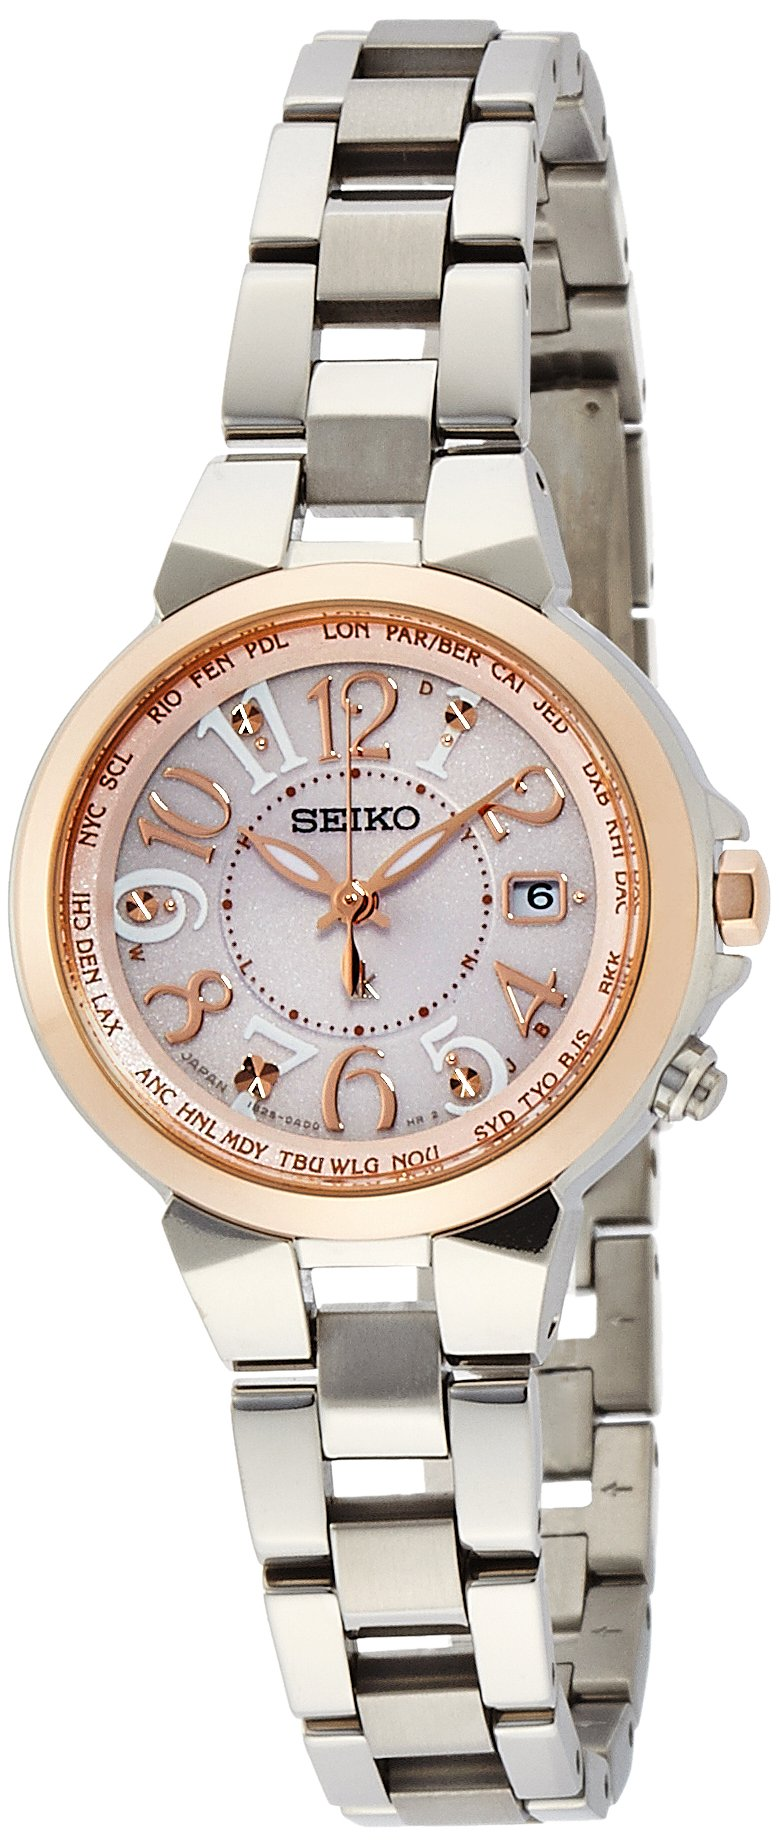 SEIKO WATCH LUKIA Mass-media model Lucky passport Solar sapphire glass super clear coating SSQV004 Lady's by SEIKO